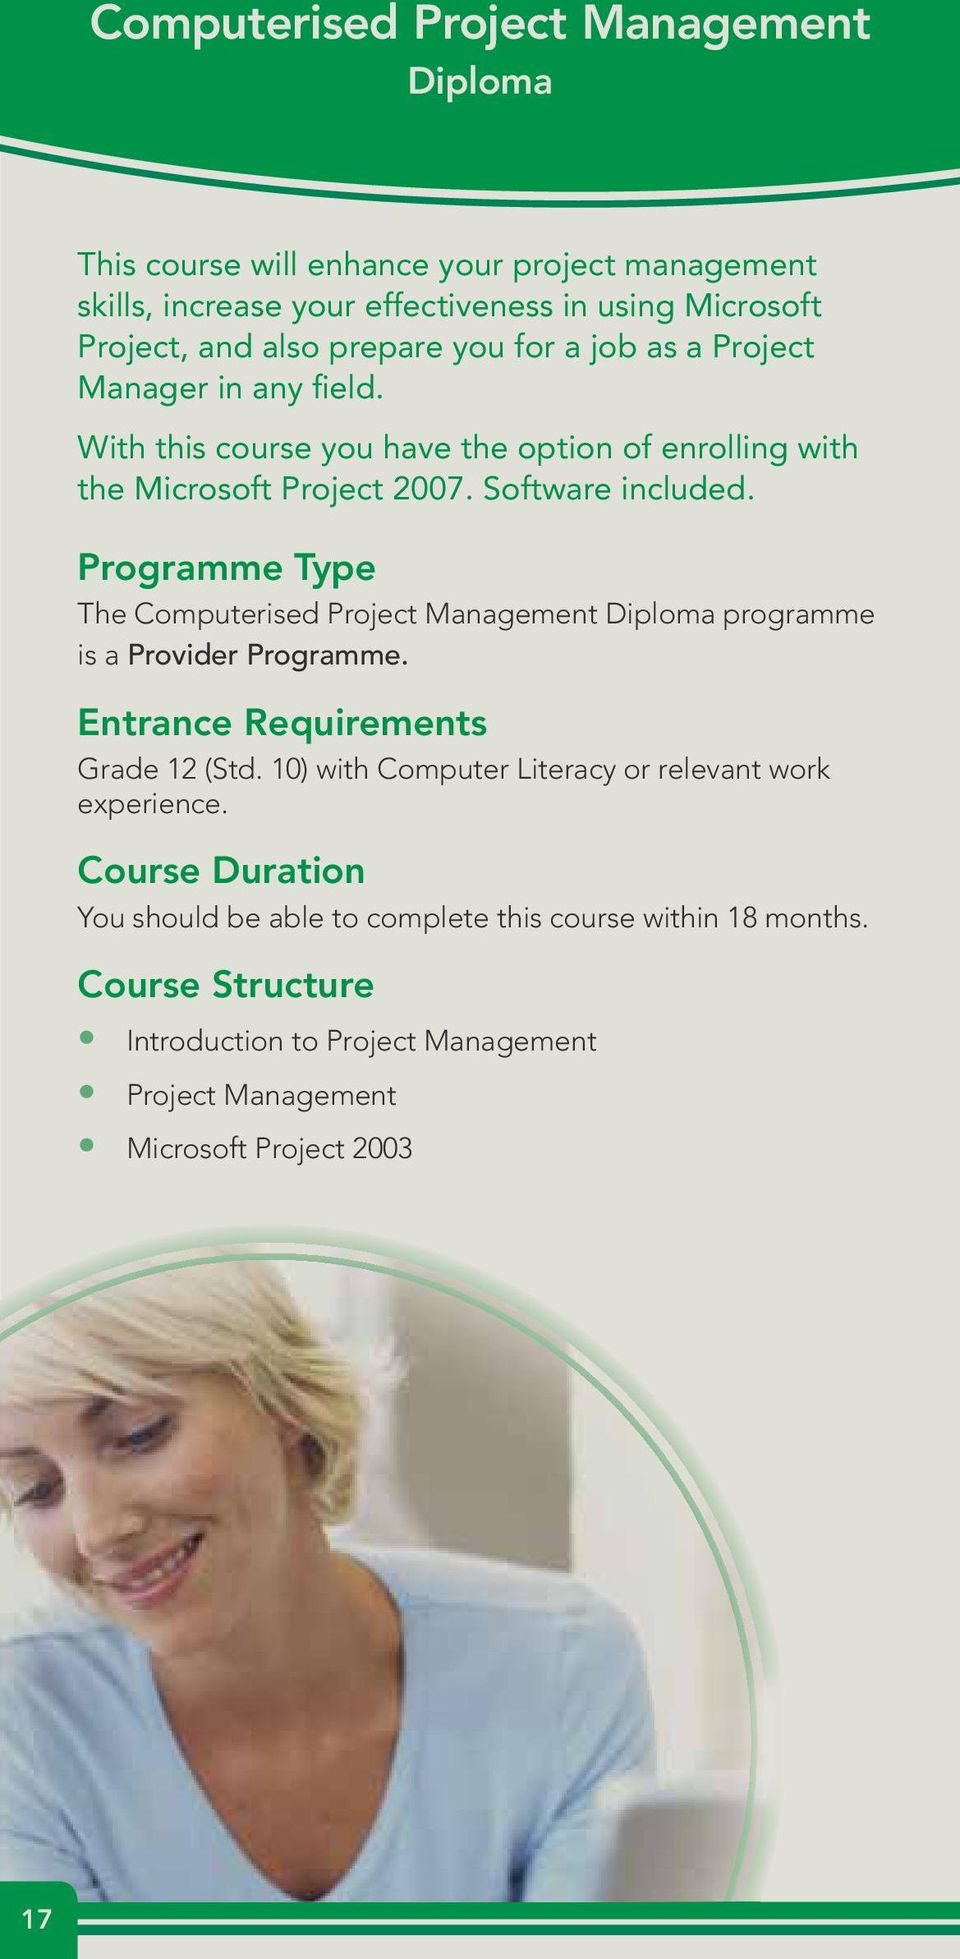 Programme Type The Computerised Project Management Diploma programme is a Provider Programme. Entrance Requirements Grade 12 (Std.